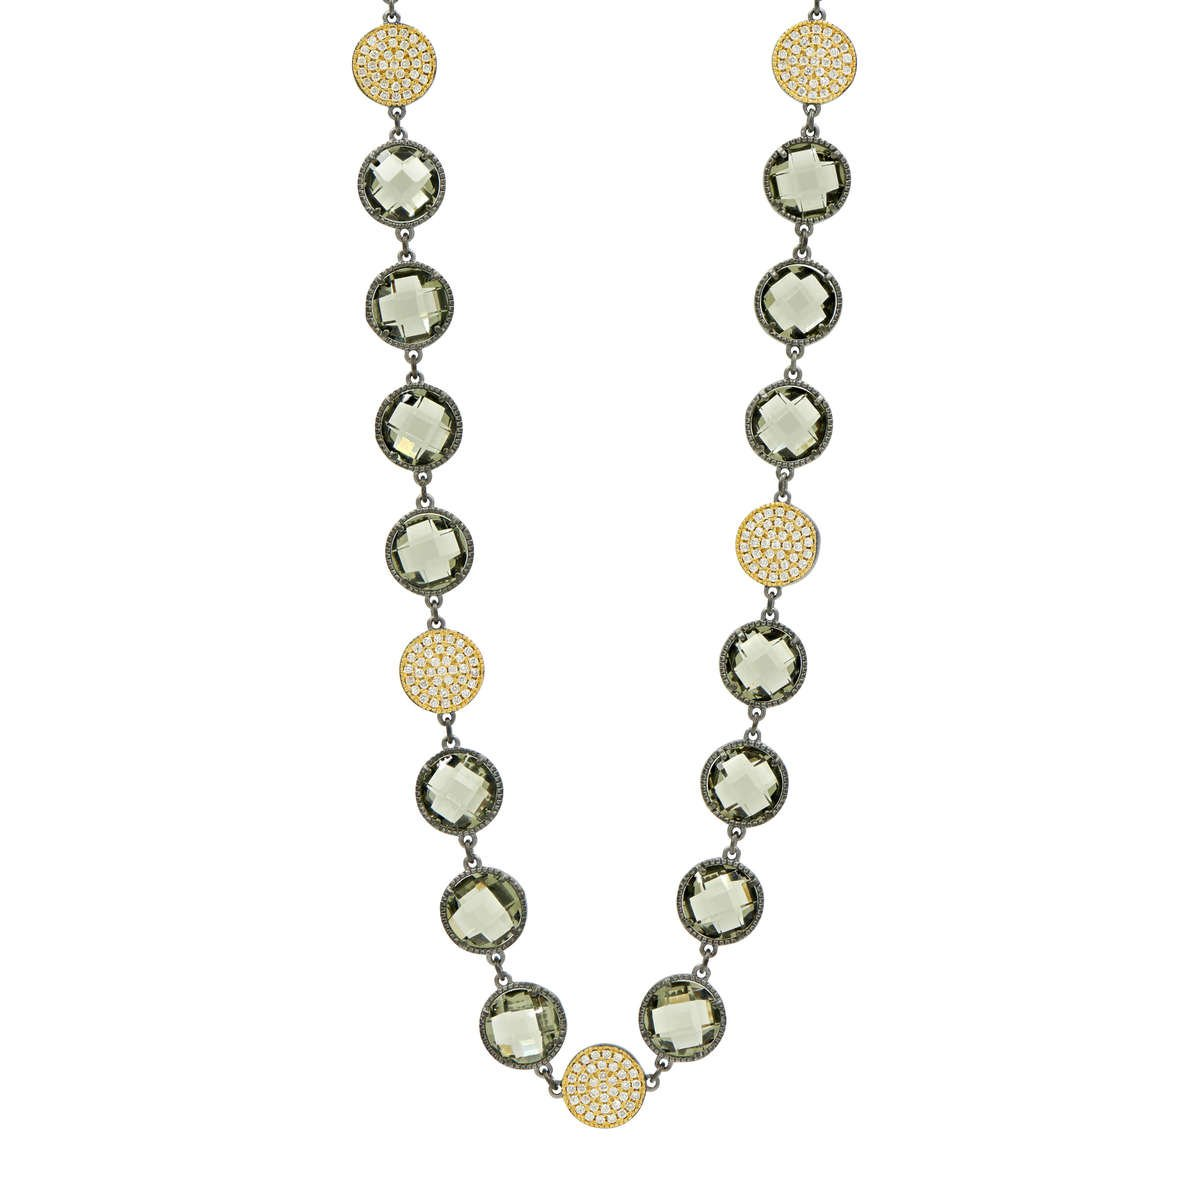 ROSE D'OR BRILLIANCE LONG STRAND NECKLACE